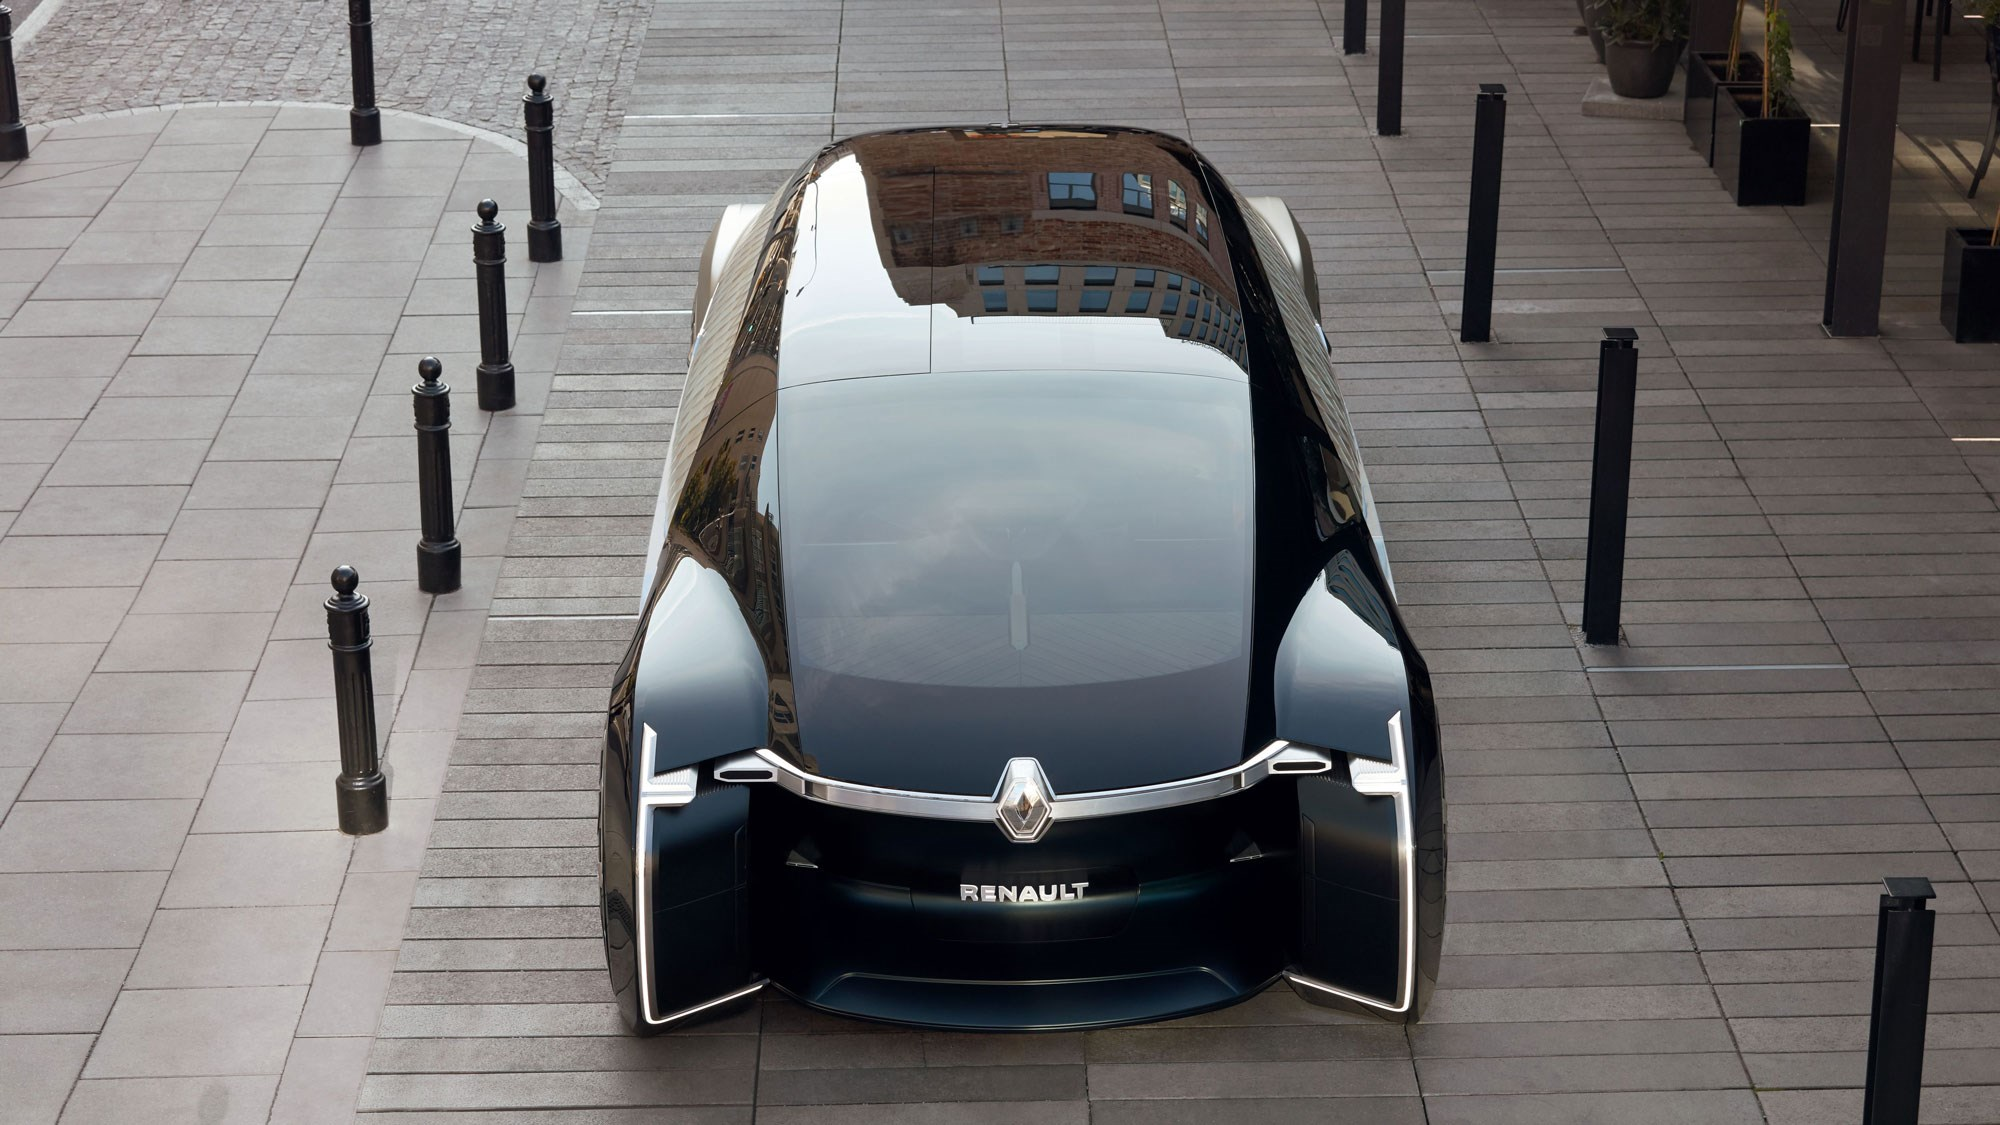 Renault Ez Ultimo A Robo Taxi Concept With Class Car Magazine